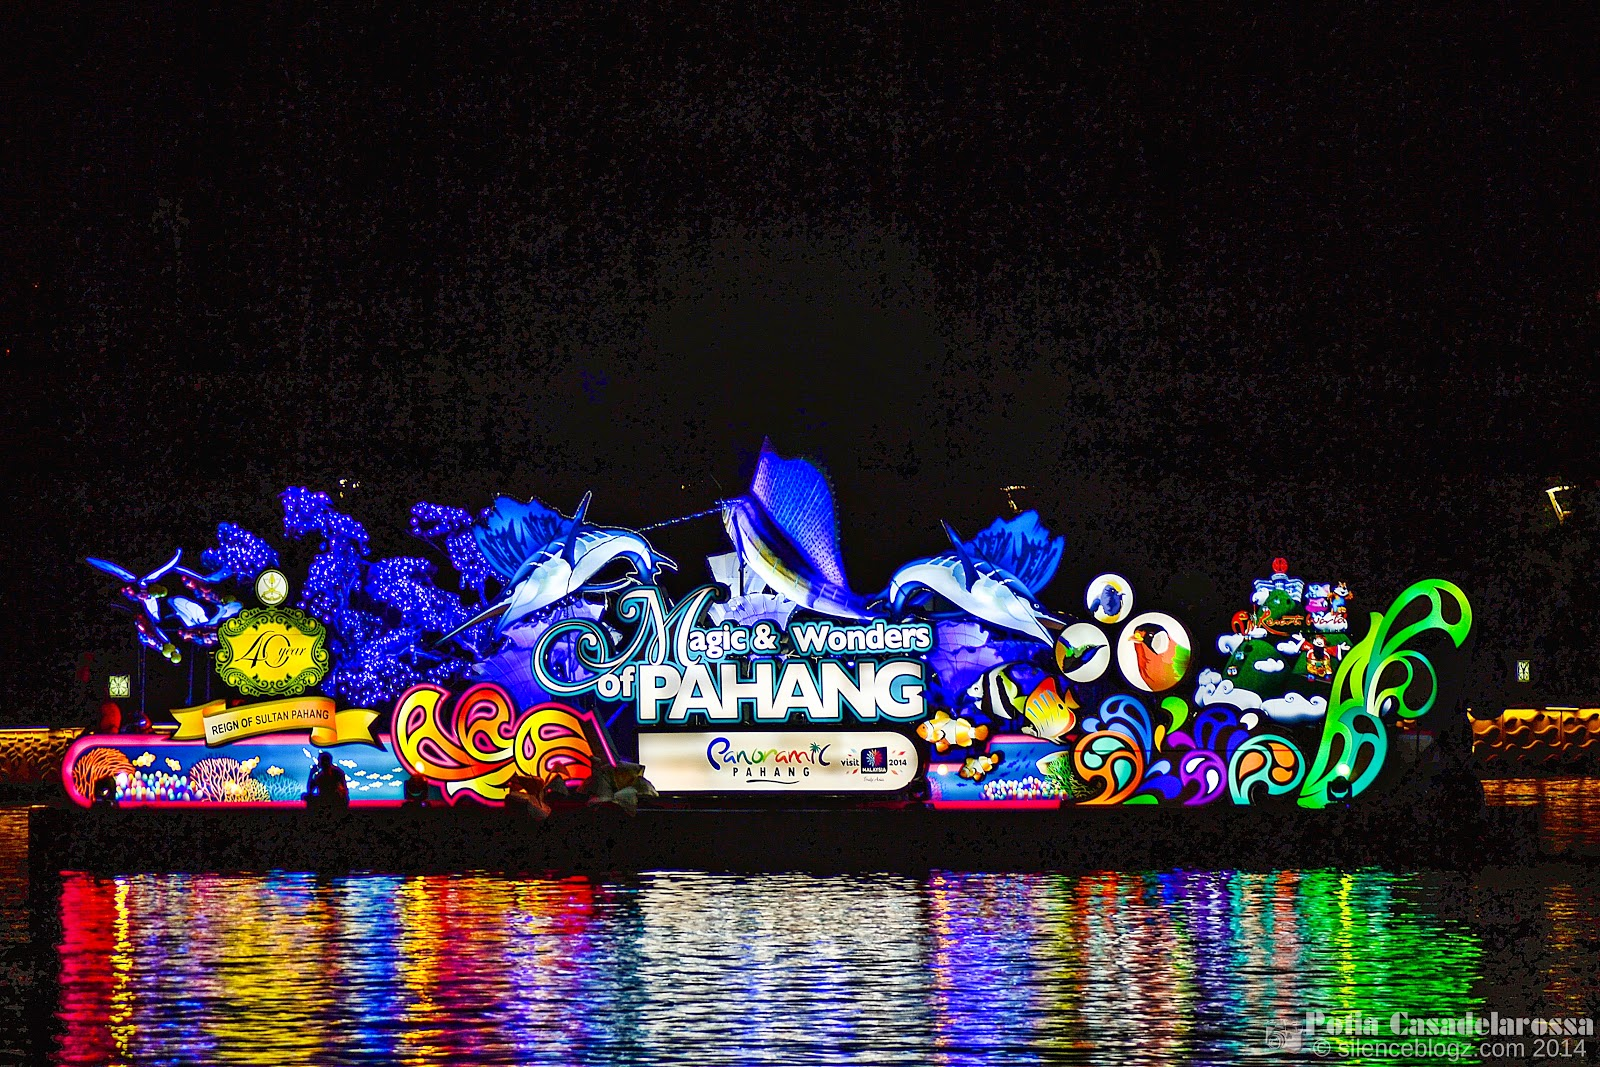 Gambar Sekitar Magic of The Night Putrajaya 2014